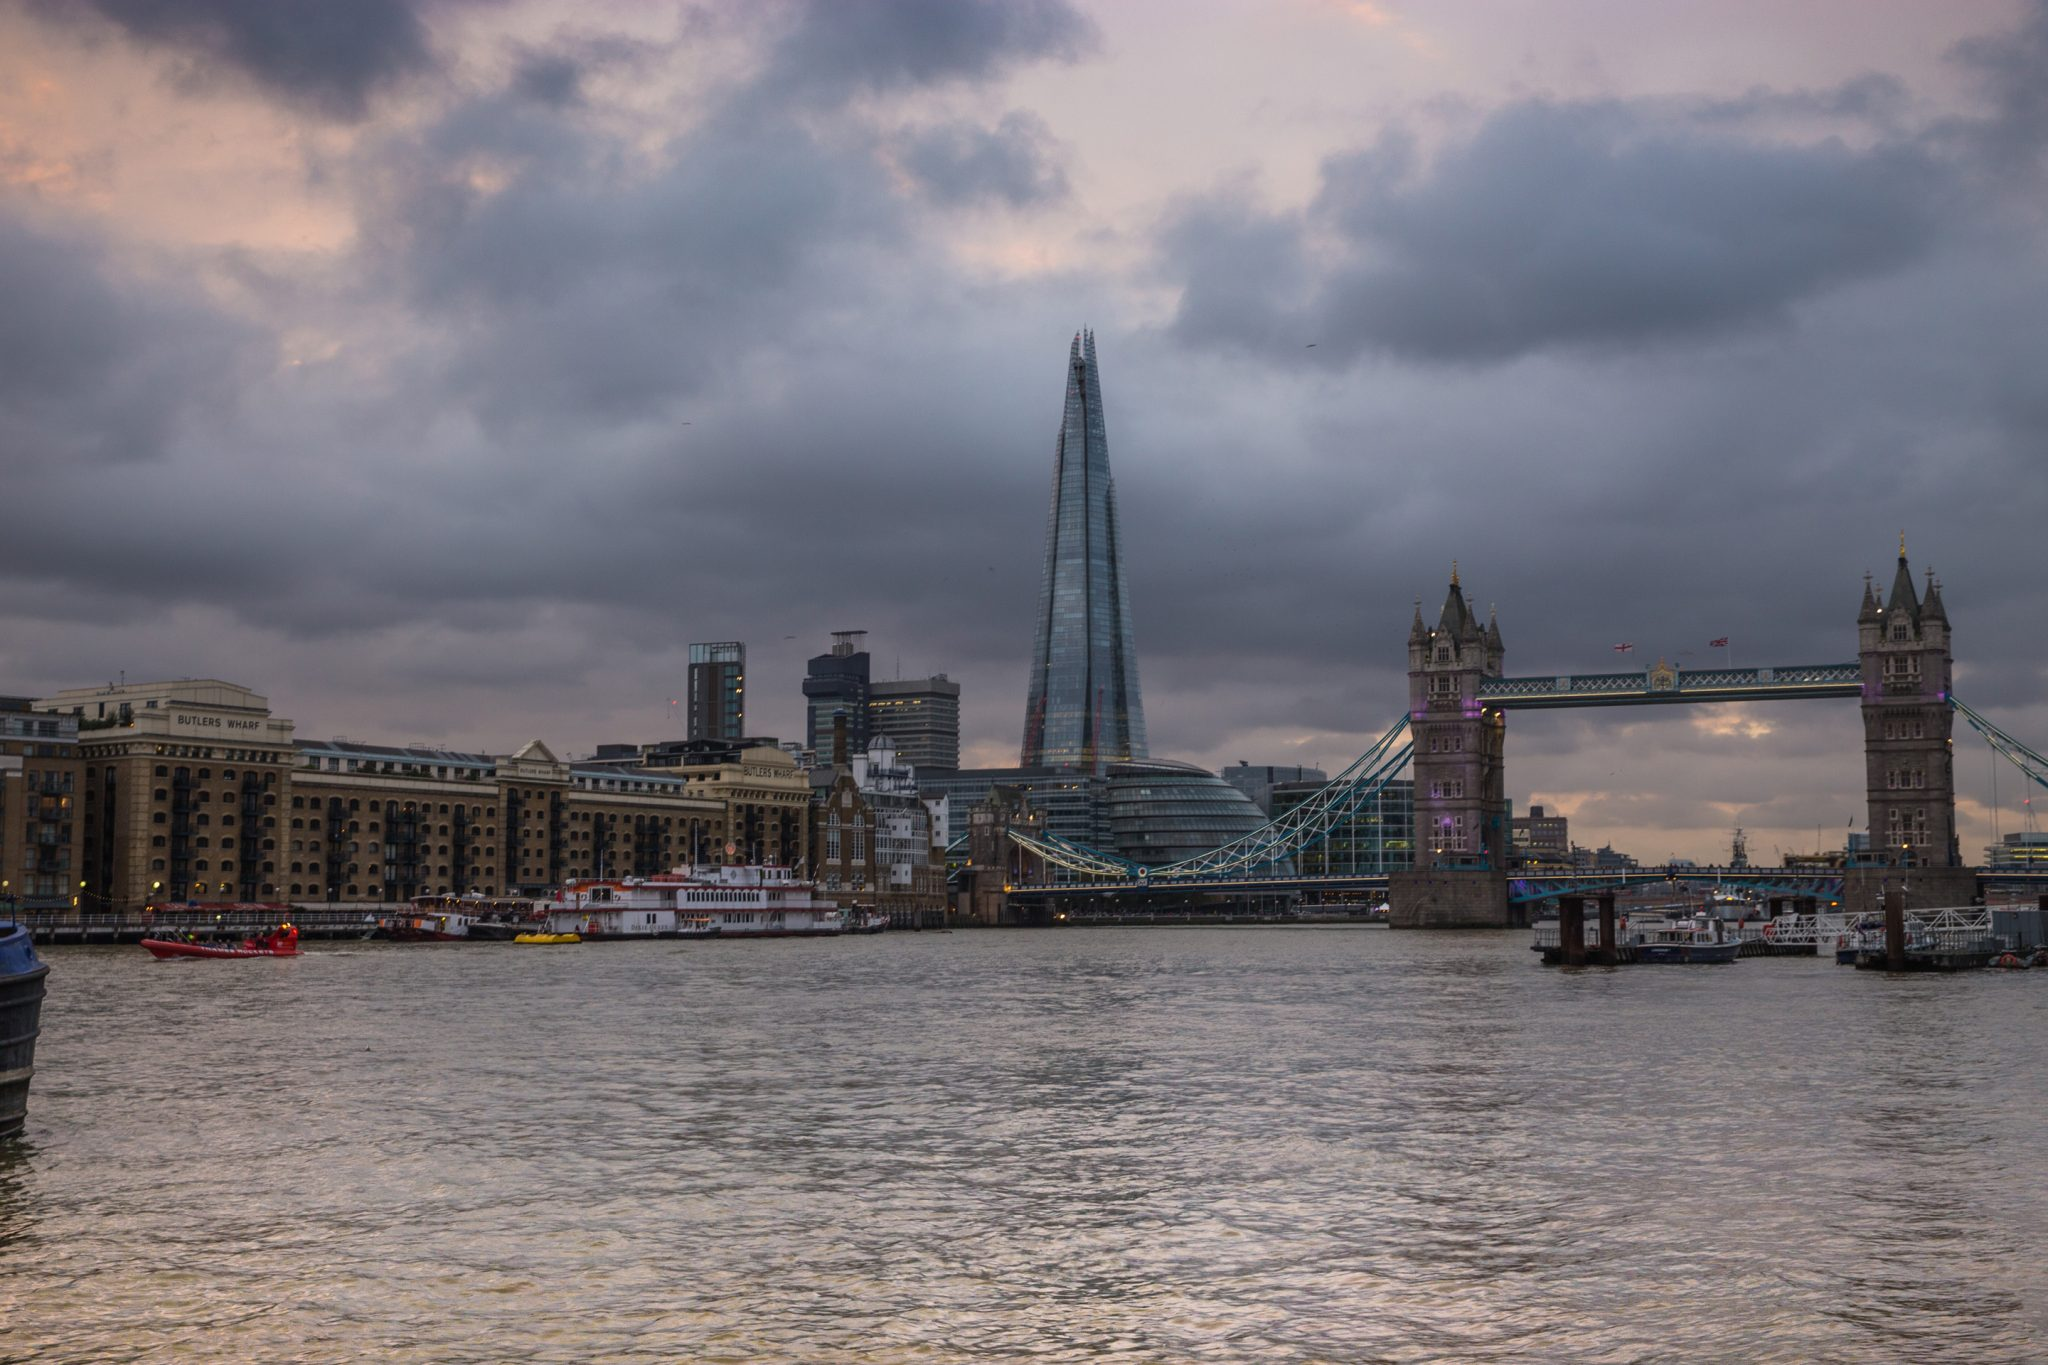 The Shard, Butlers Wharf and Tower Bridge, City of London, England. Showing Contrasting Architecture.